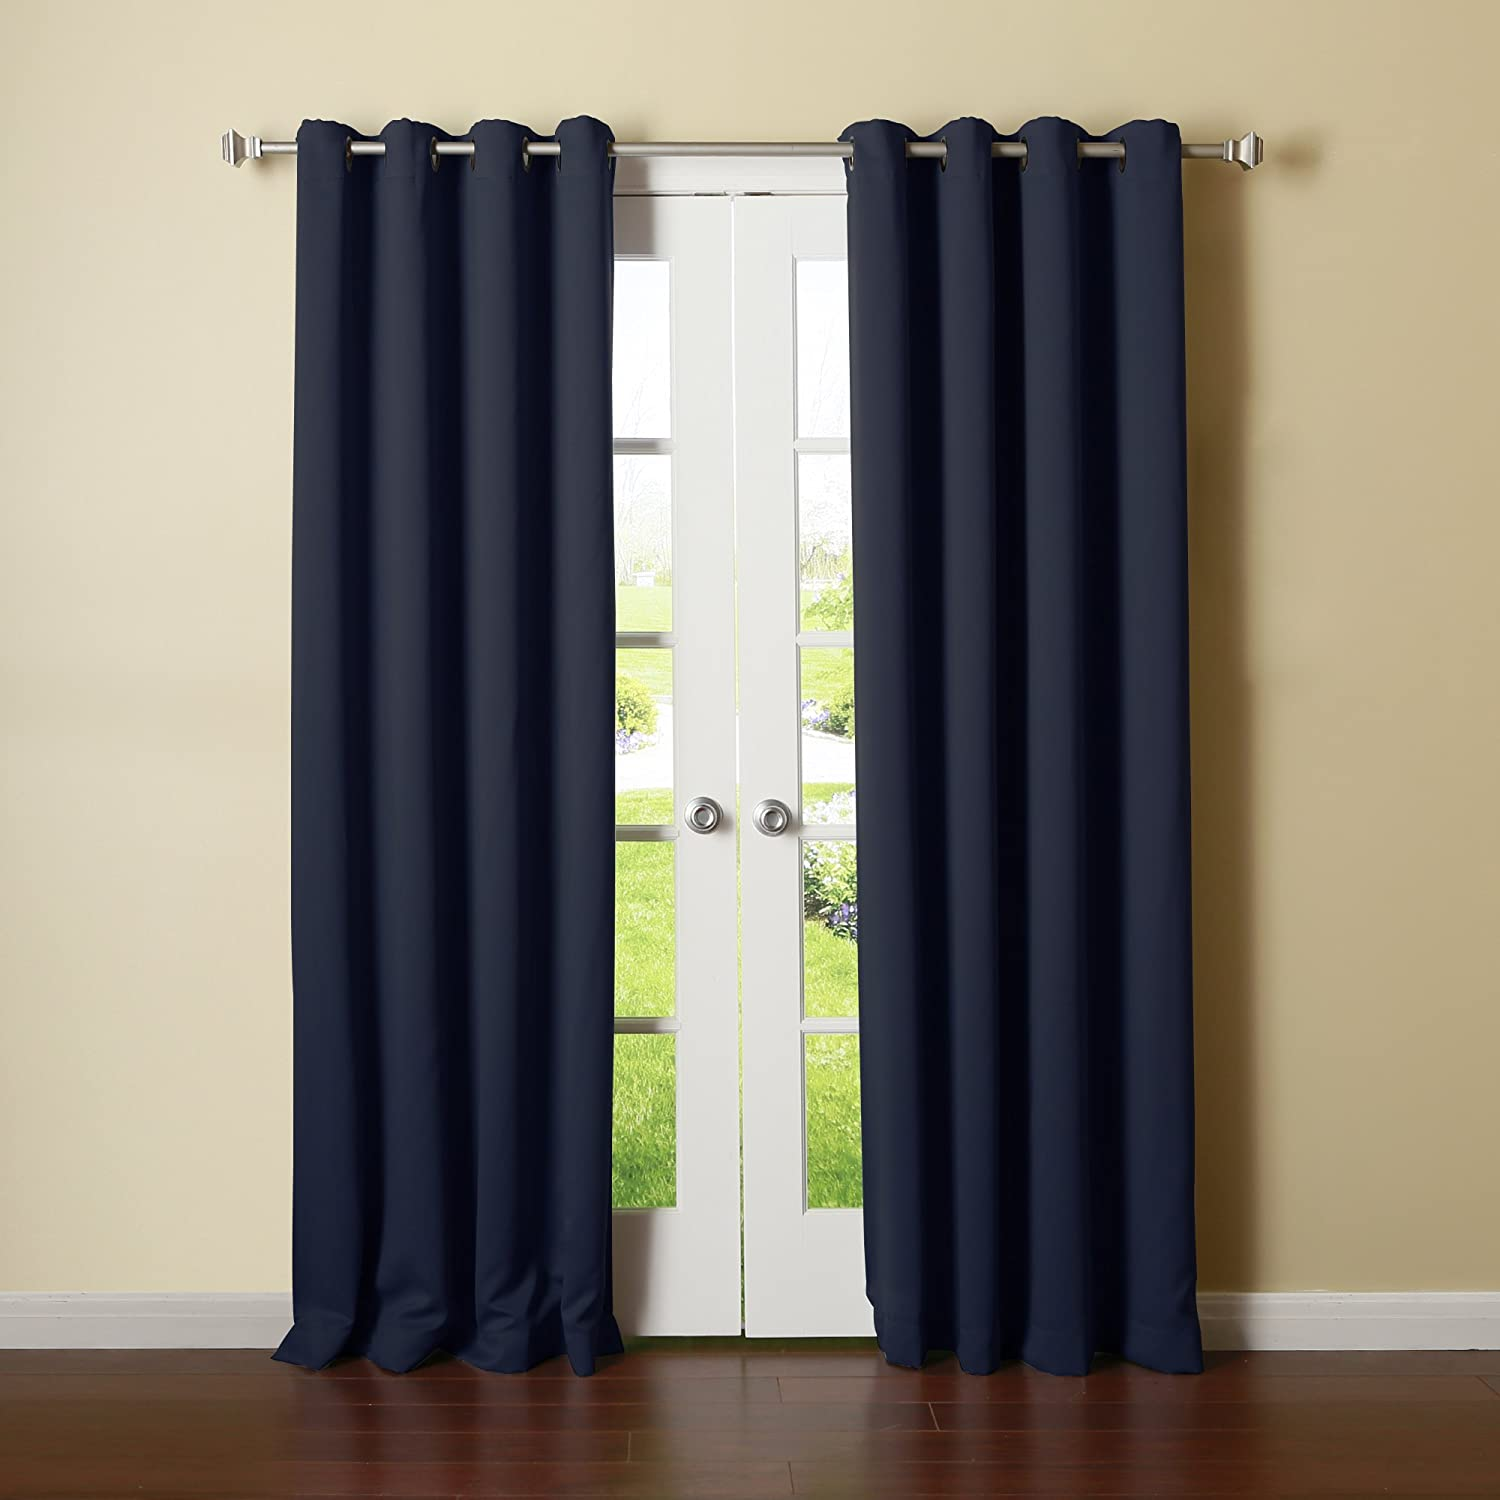 Navy curtains blackout - Blackout Curtains White 84 Navy And White Blackout Curtains Amazon Com Best Home Fashion Thermal